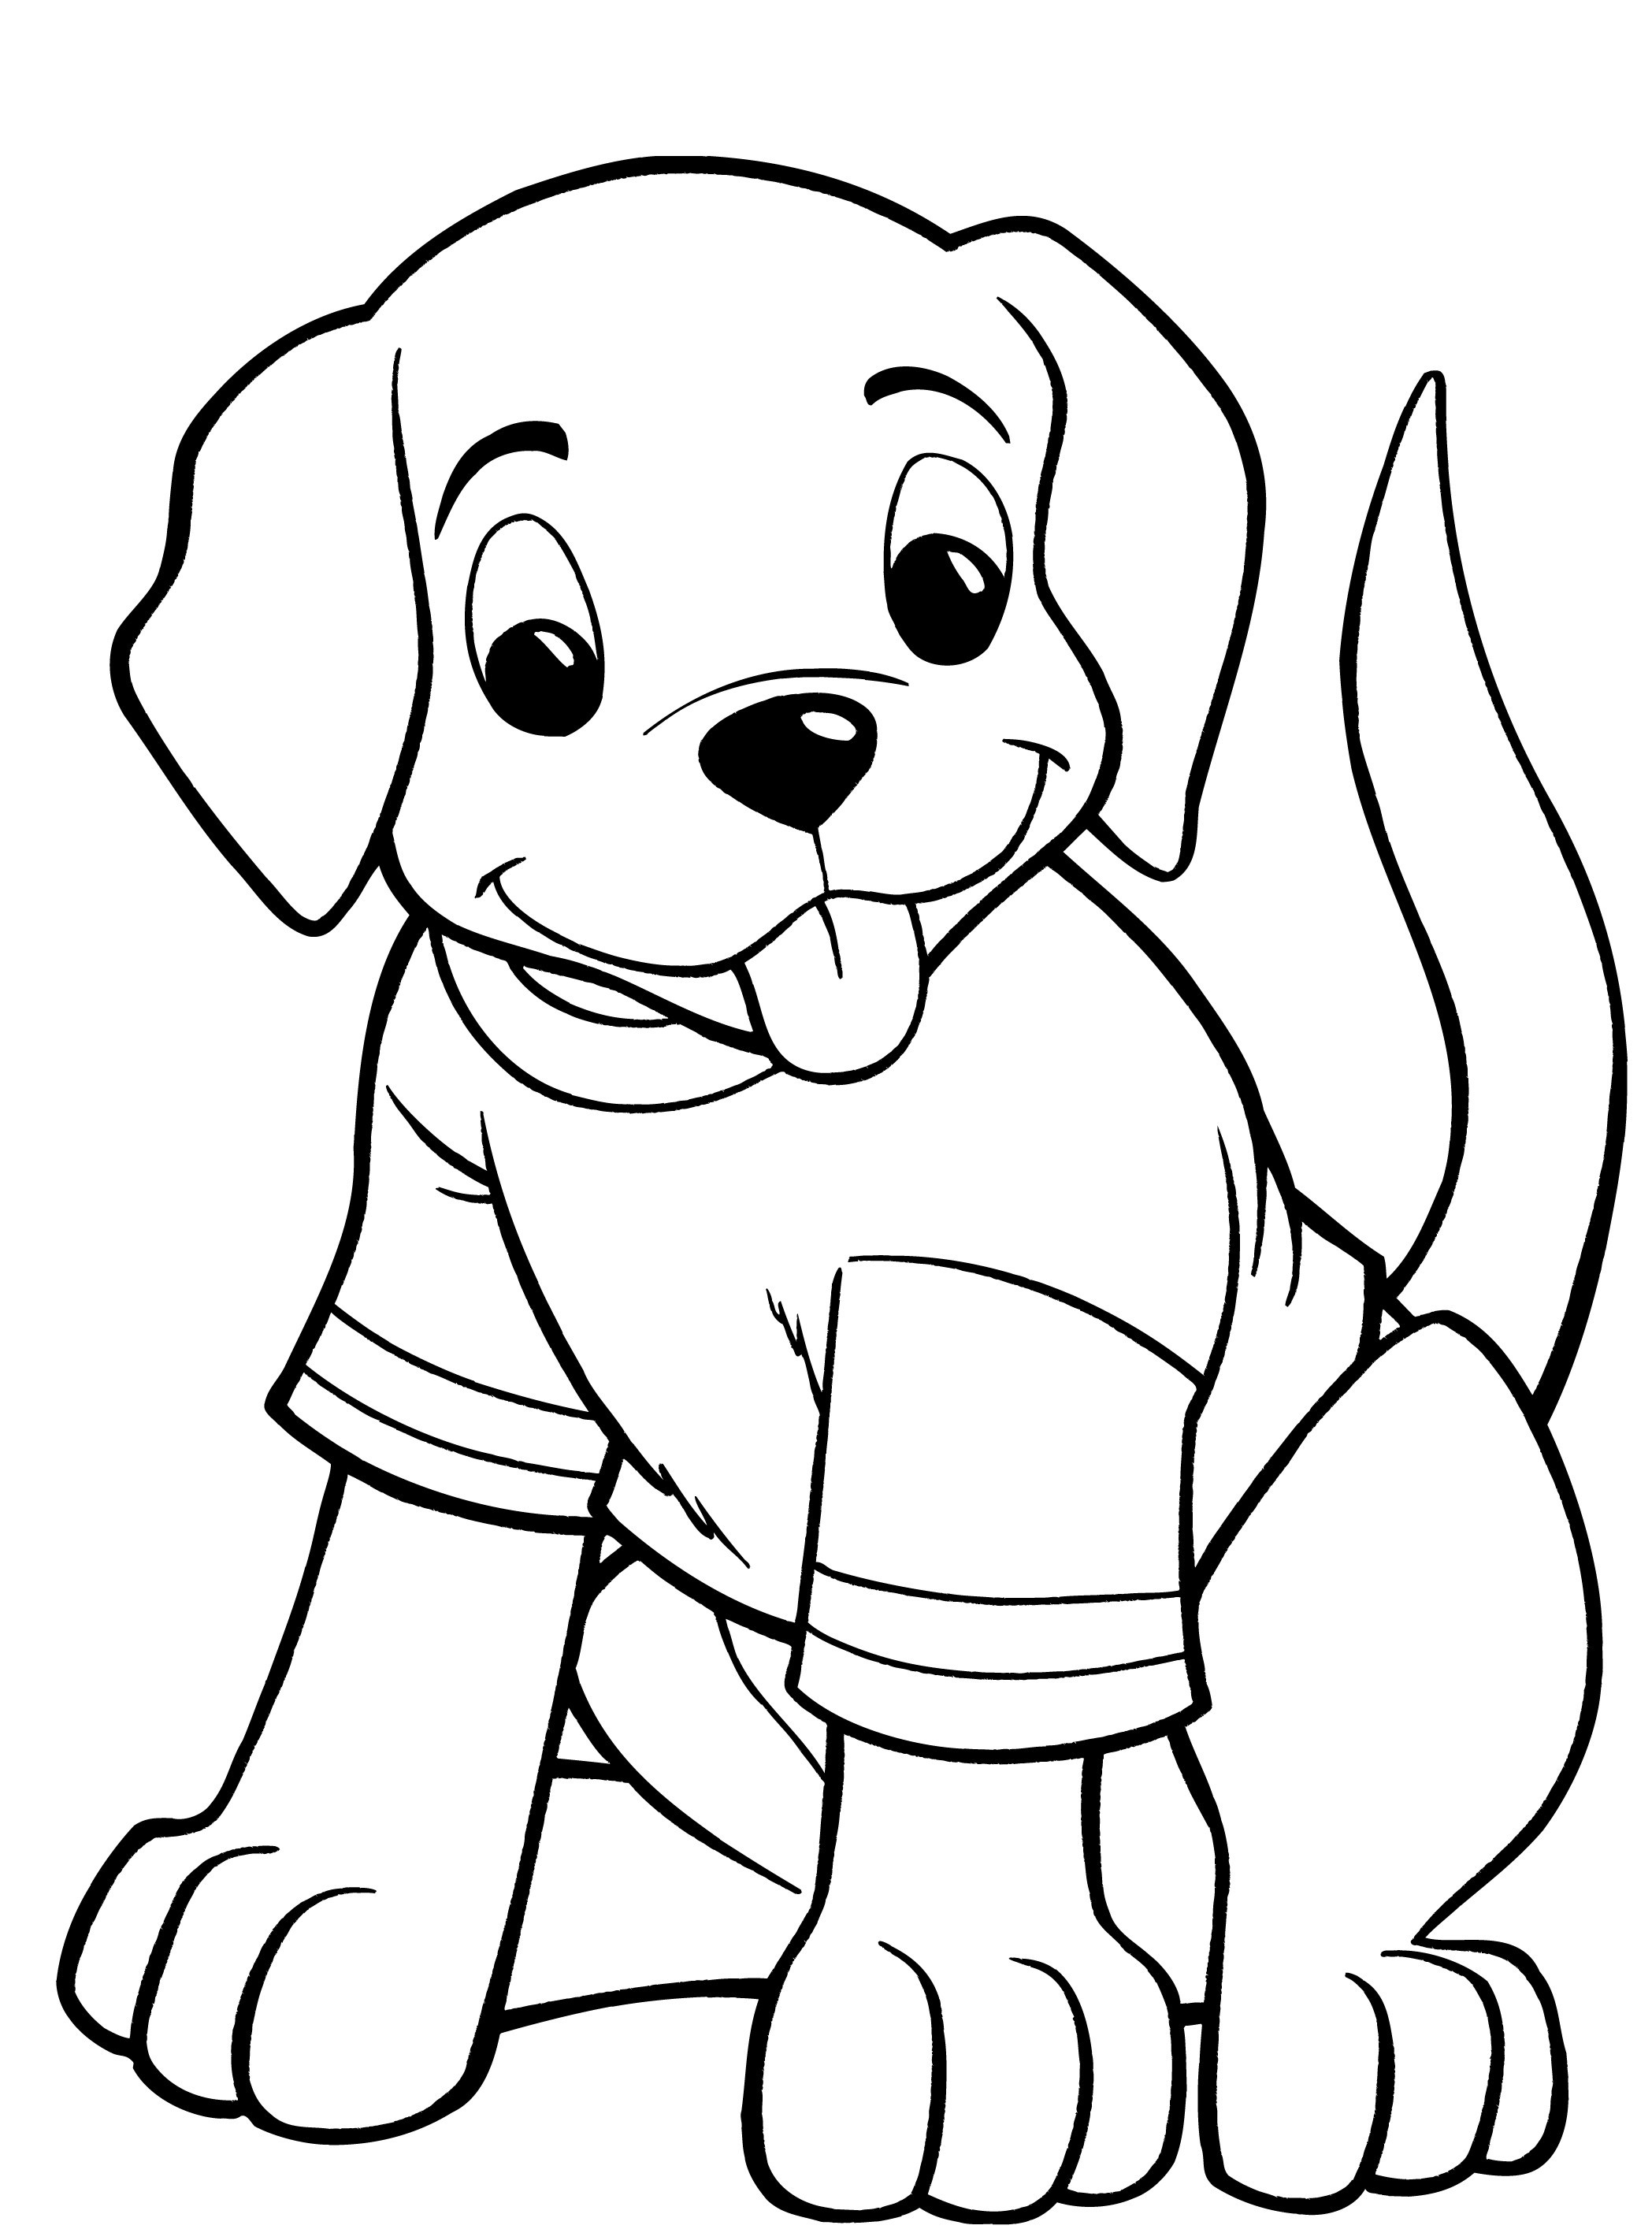 dog colouring in cute dog coloring pages to download and print for free dog in colouring